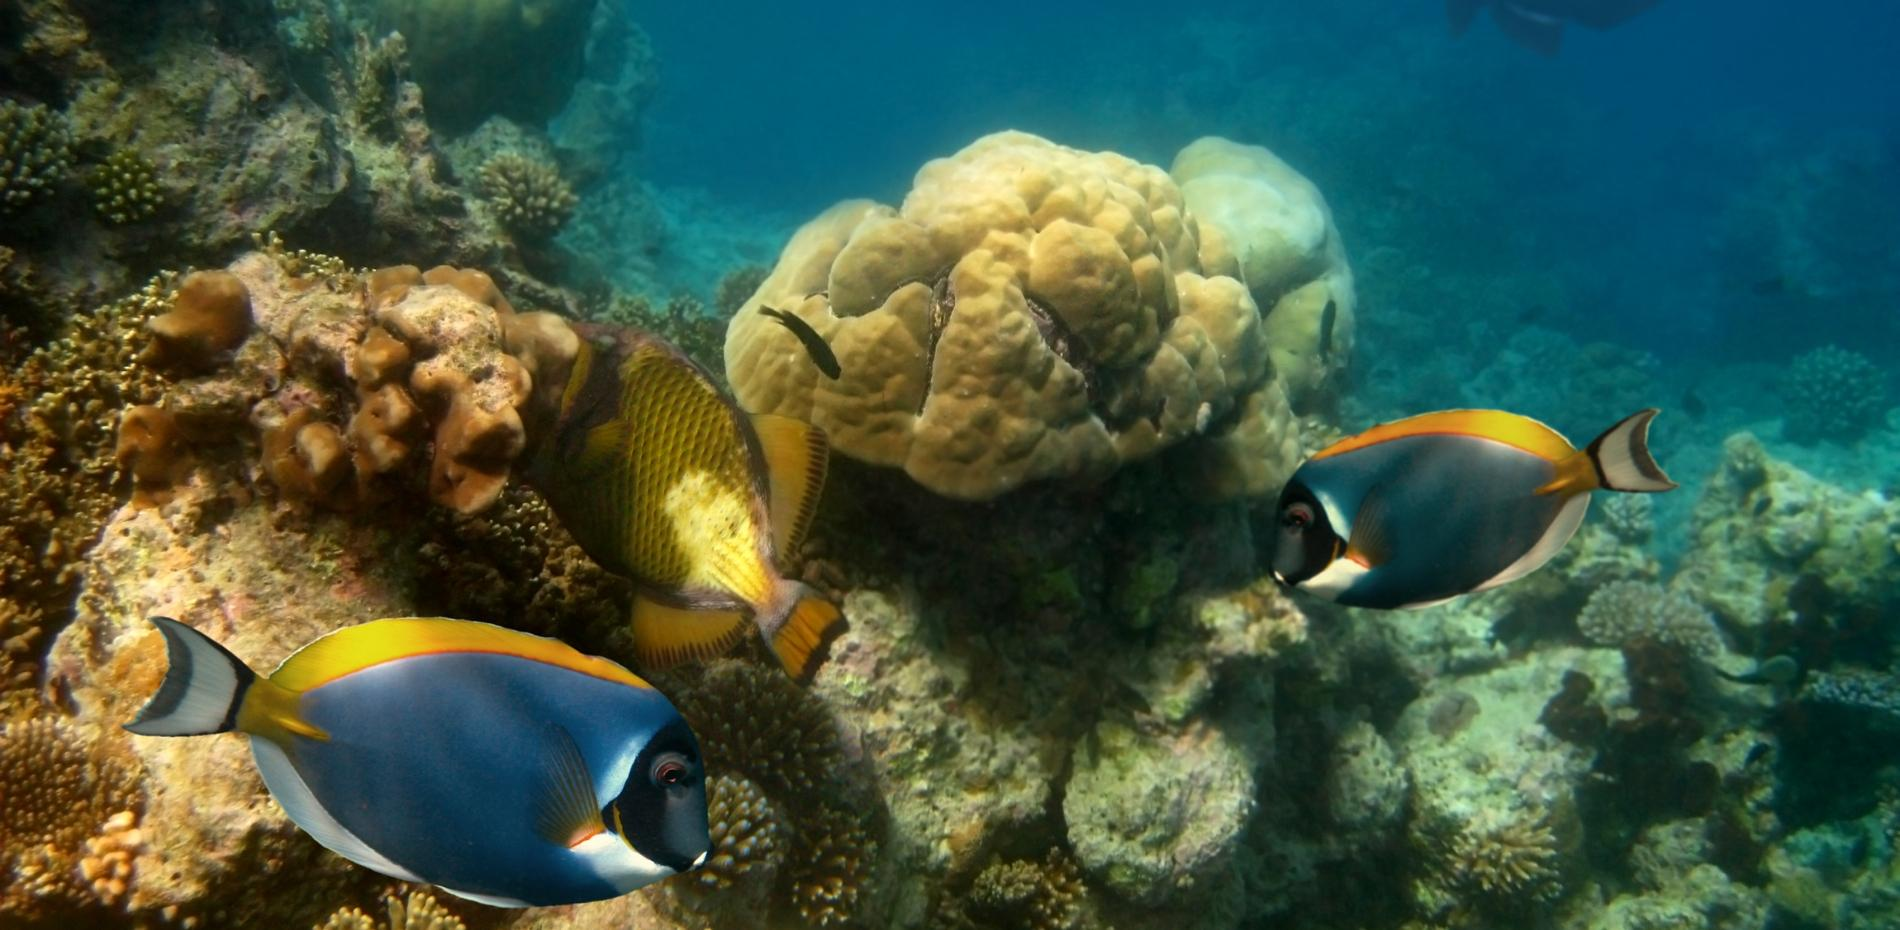 Fishes among the coral reef at the bottom of the ocean